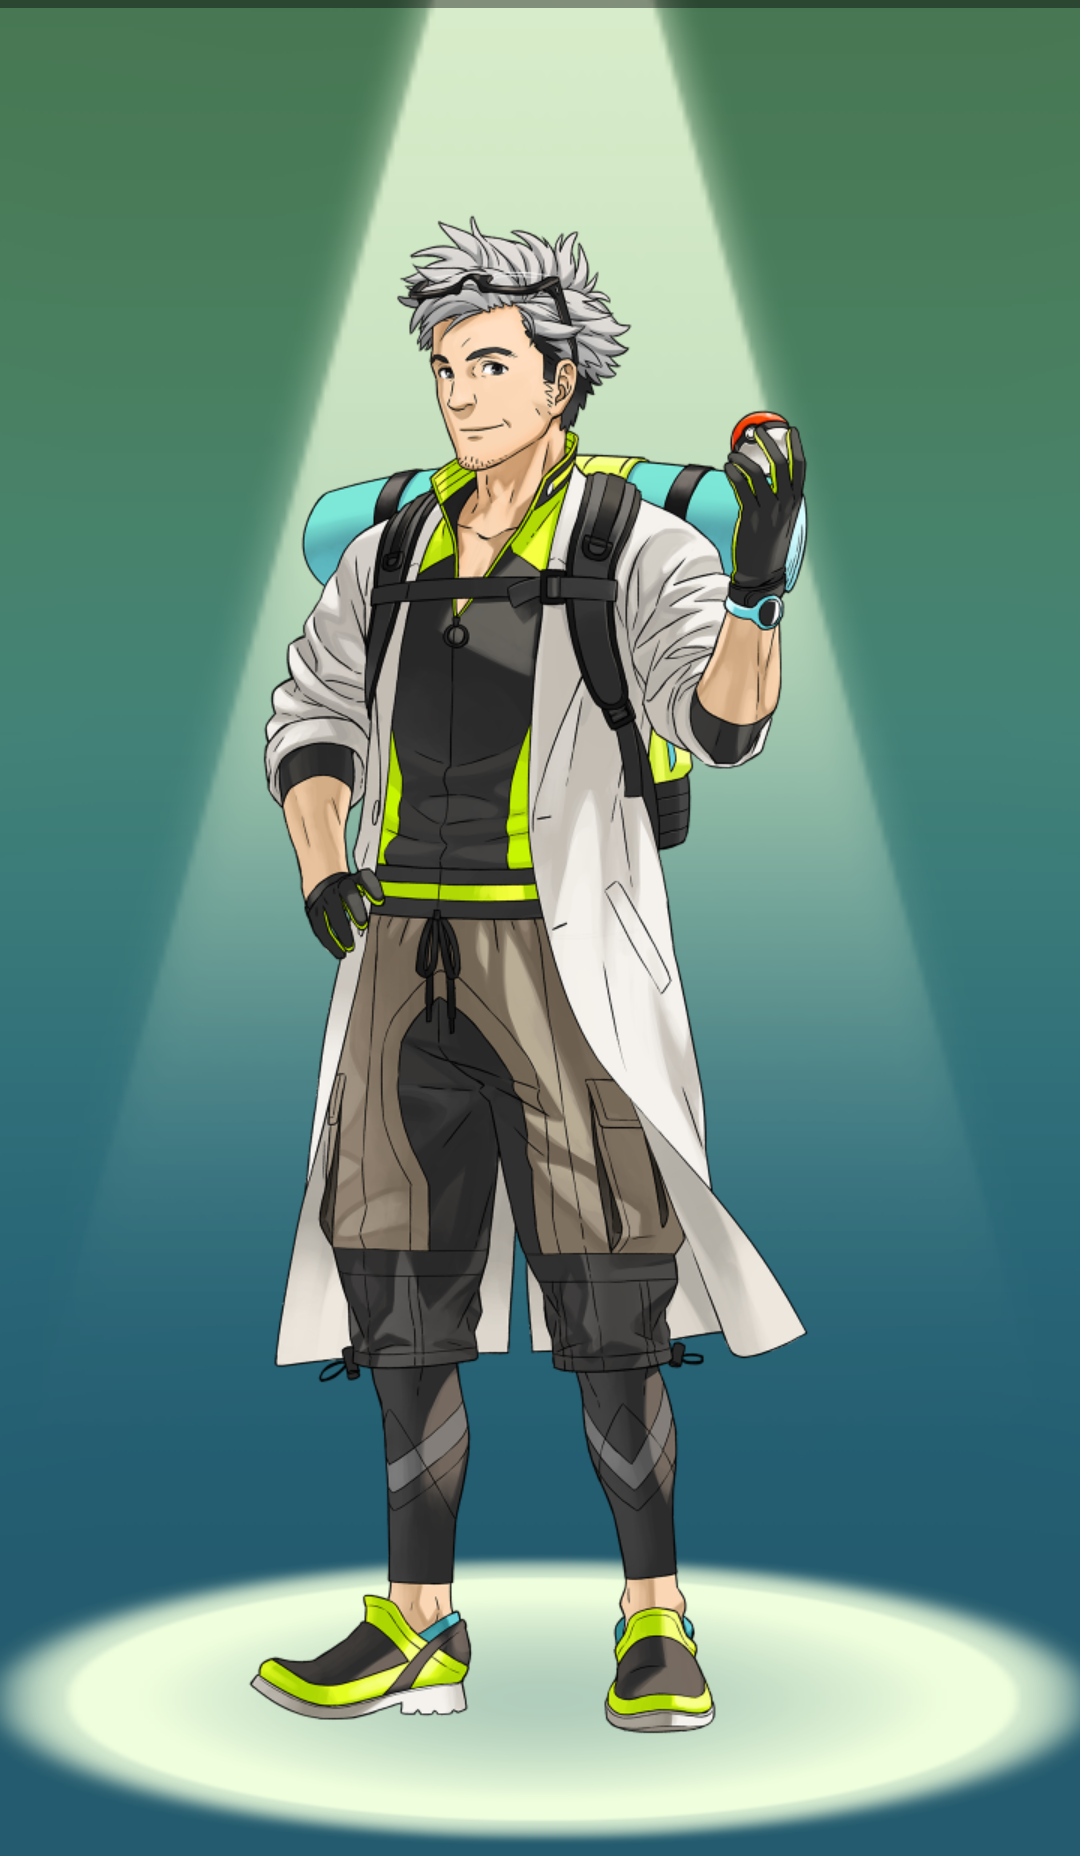 Professor Willow